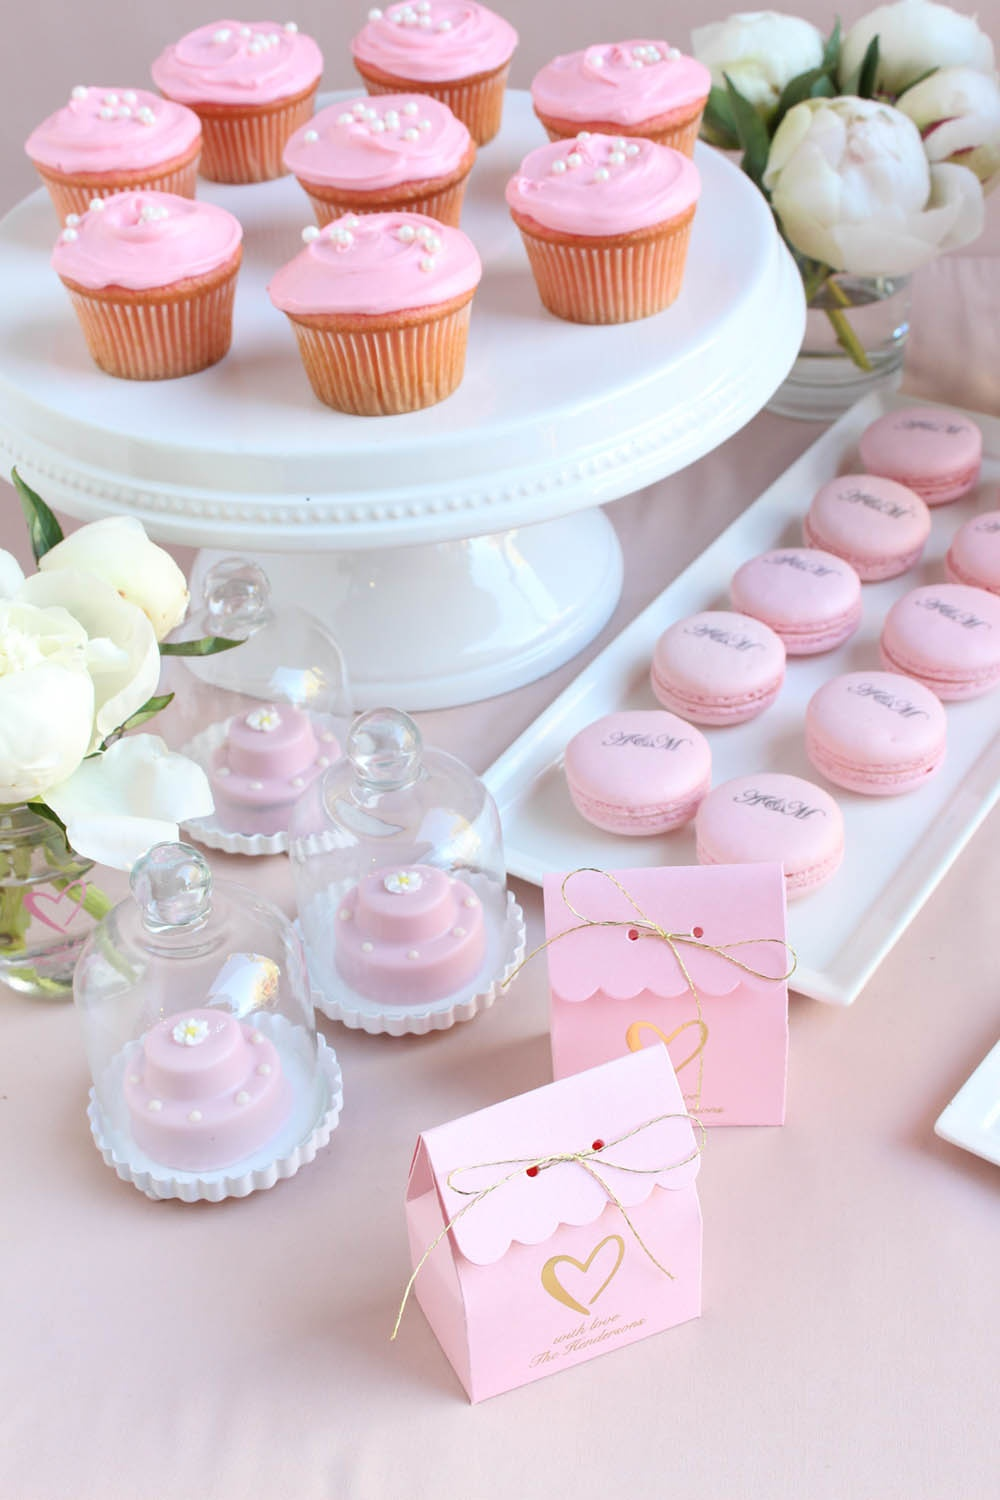 pink wedding, heart themed wedding, classic wedding, pink and gold wedding, blush pink wedding, classic heart wedding, pink cupcakes, pink macarons, pink favor boxes, pink favor bags, pink edibles, pink favors